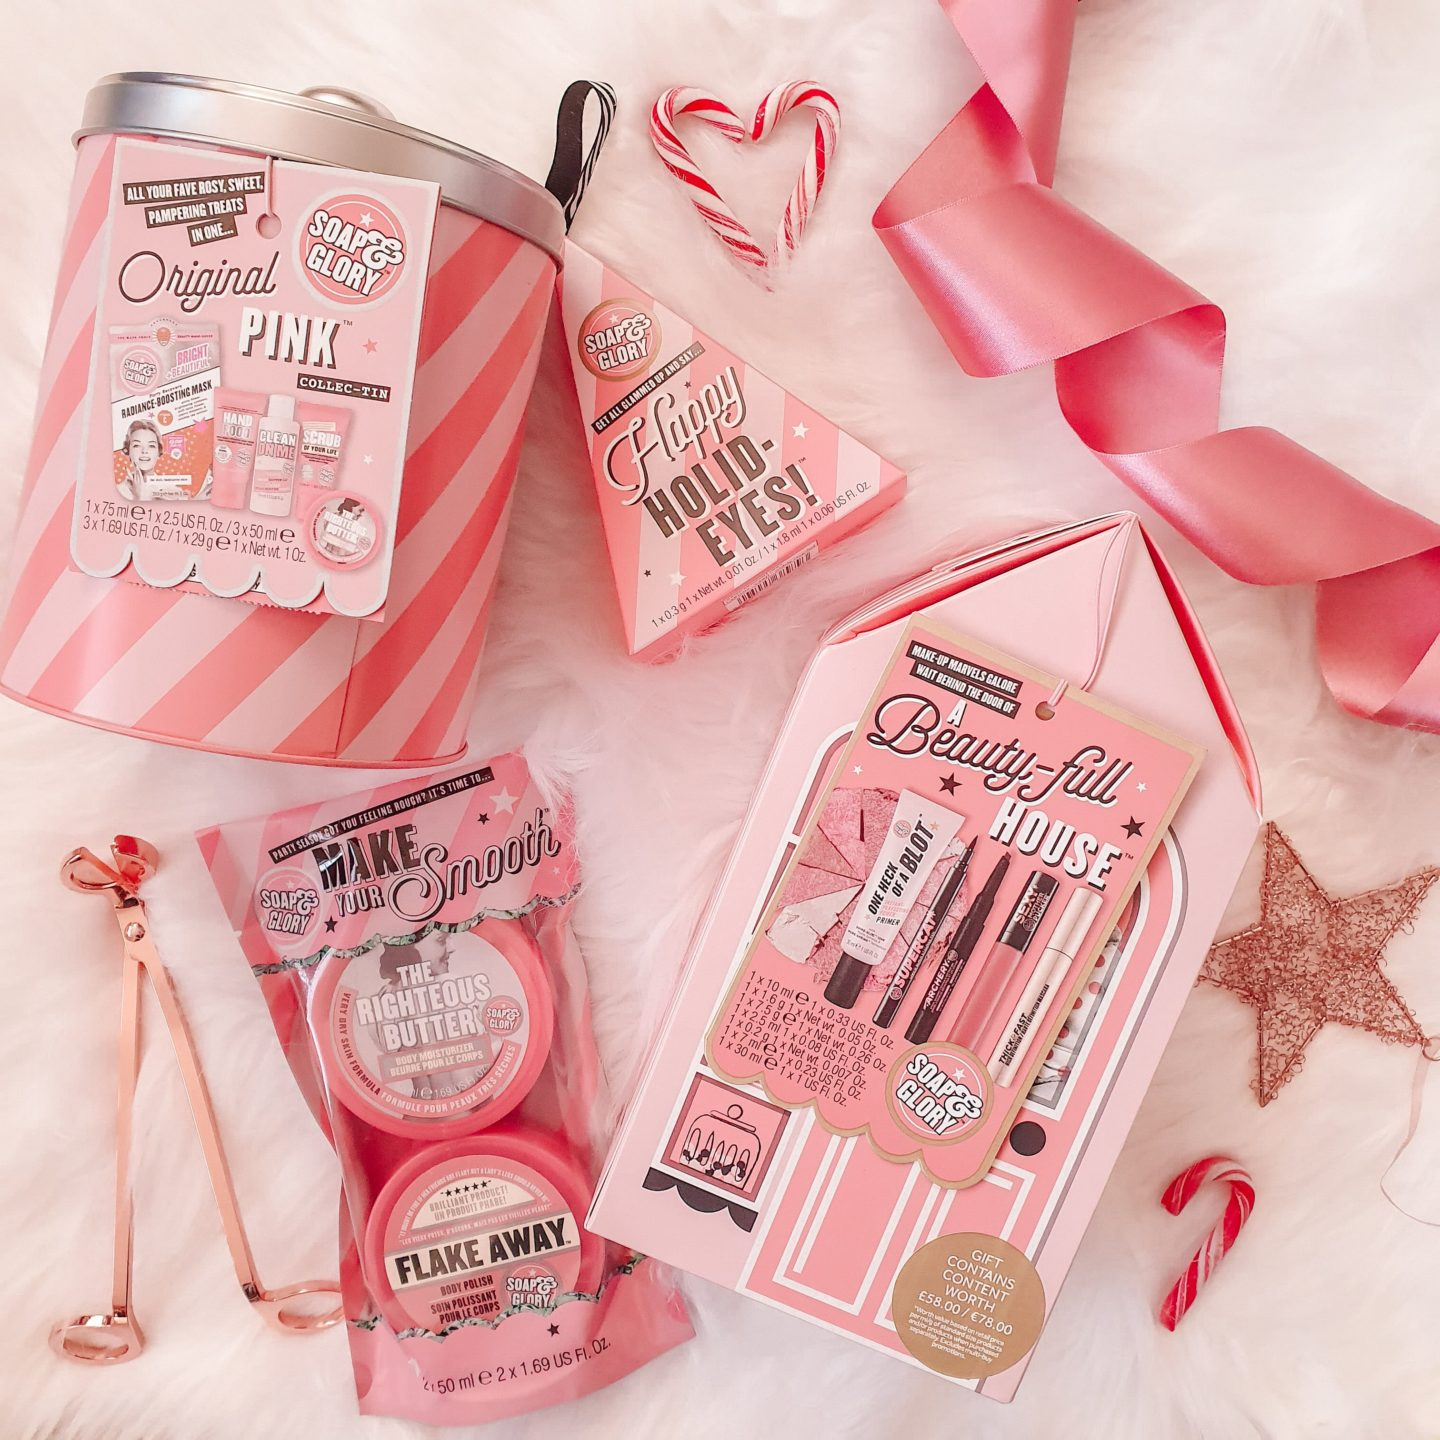 Soap & Glory Christmas Gift Set Guide